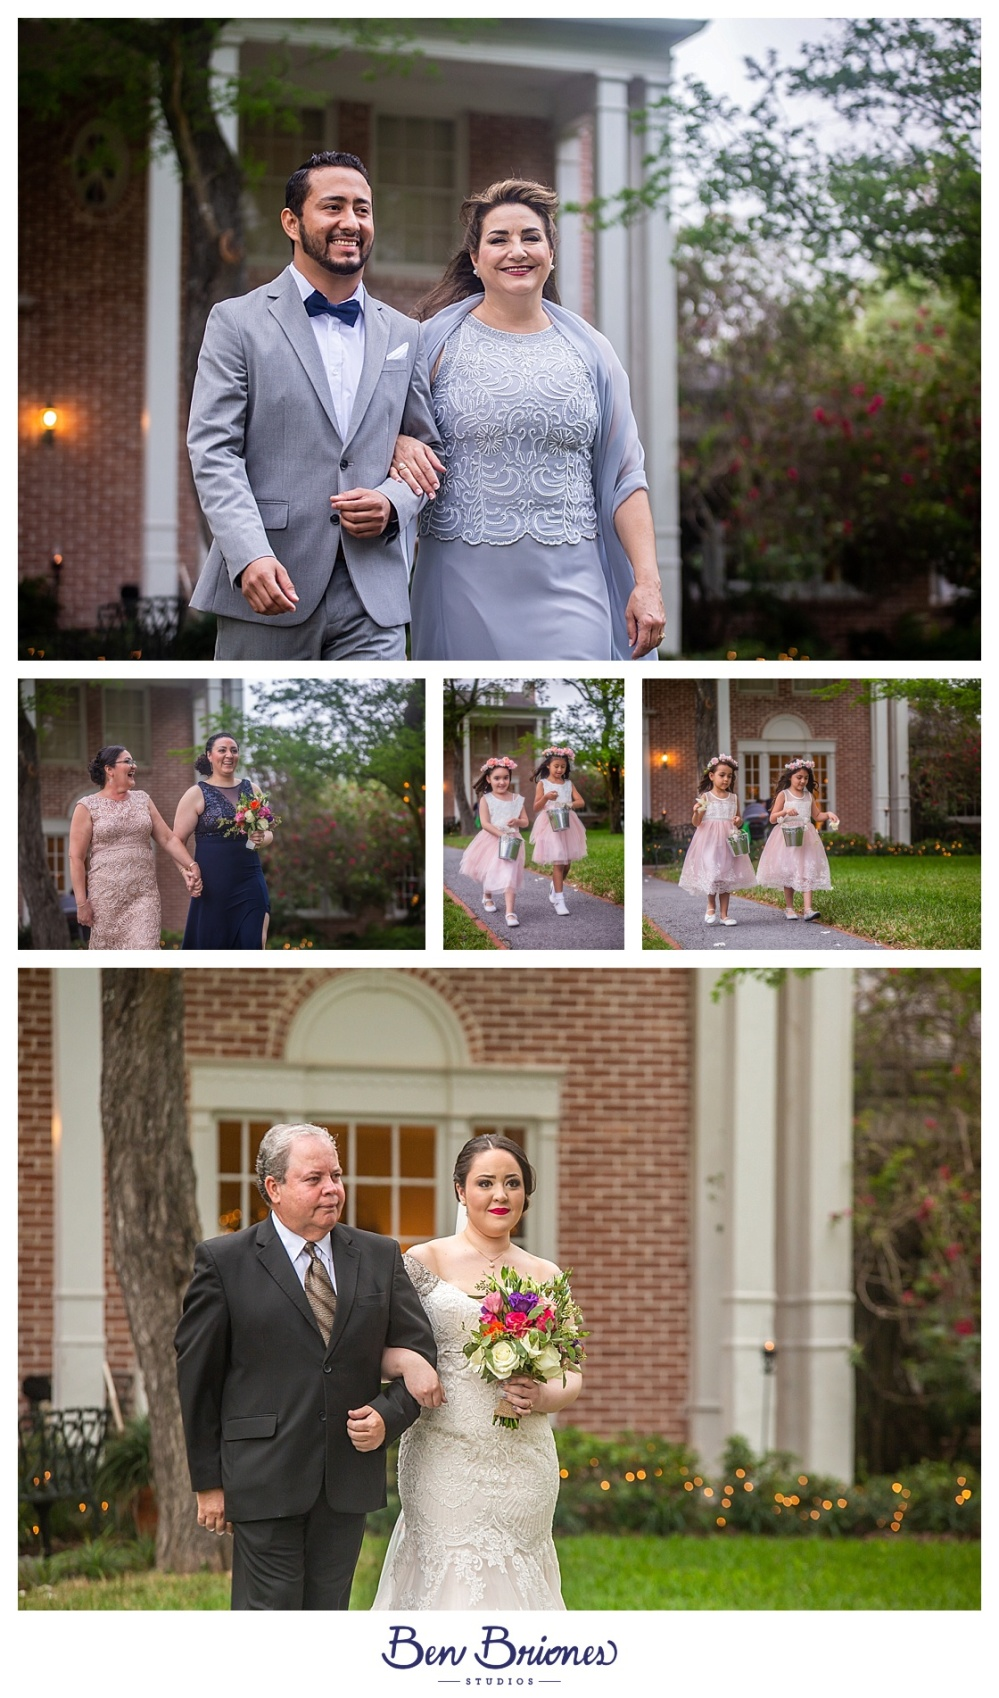 03.12.19_BLOG_Adriana Carlos Wedding_BBP-8370